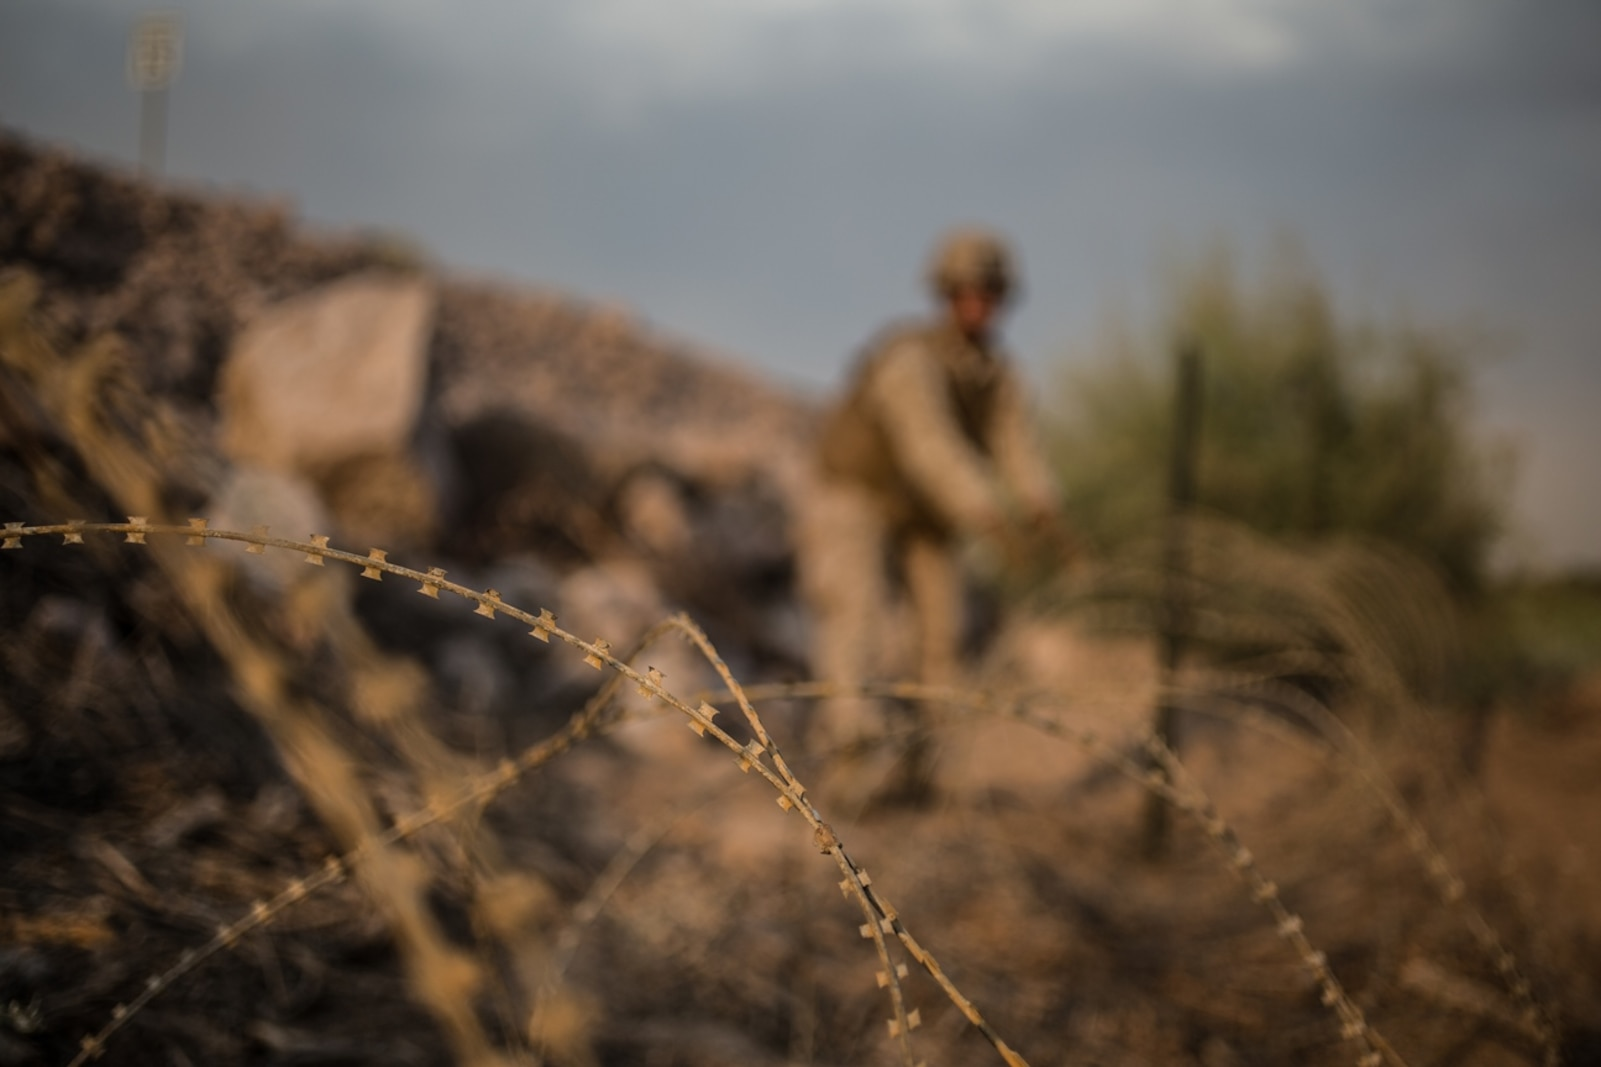 A U.S. Marine with Bridge Company, 7th Engineer Support Battalion, 1st Marine Logistics Group, lays down concertina wire during Exercise Deep Strike II at Blythe, Calif., Sept.6, 2017. Concertina wire is strategically placed and used to simulate setting up a forward operating base (FOB) while deployed. The concertina wire and other defensive barriers are used keep unknown persons out of the FOB and to control access. (U.S. Marine Corps photo by Lance Cpl. Timothy Shoemaker)